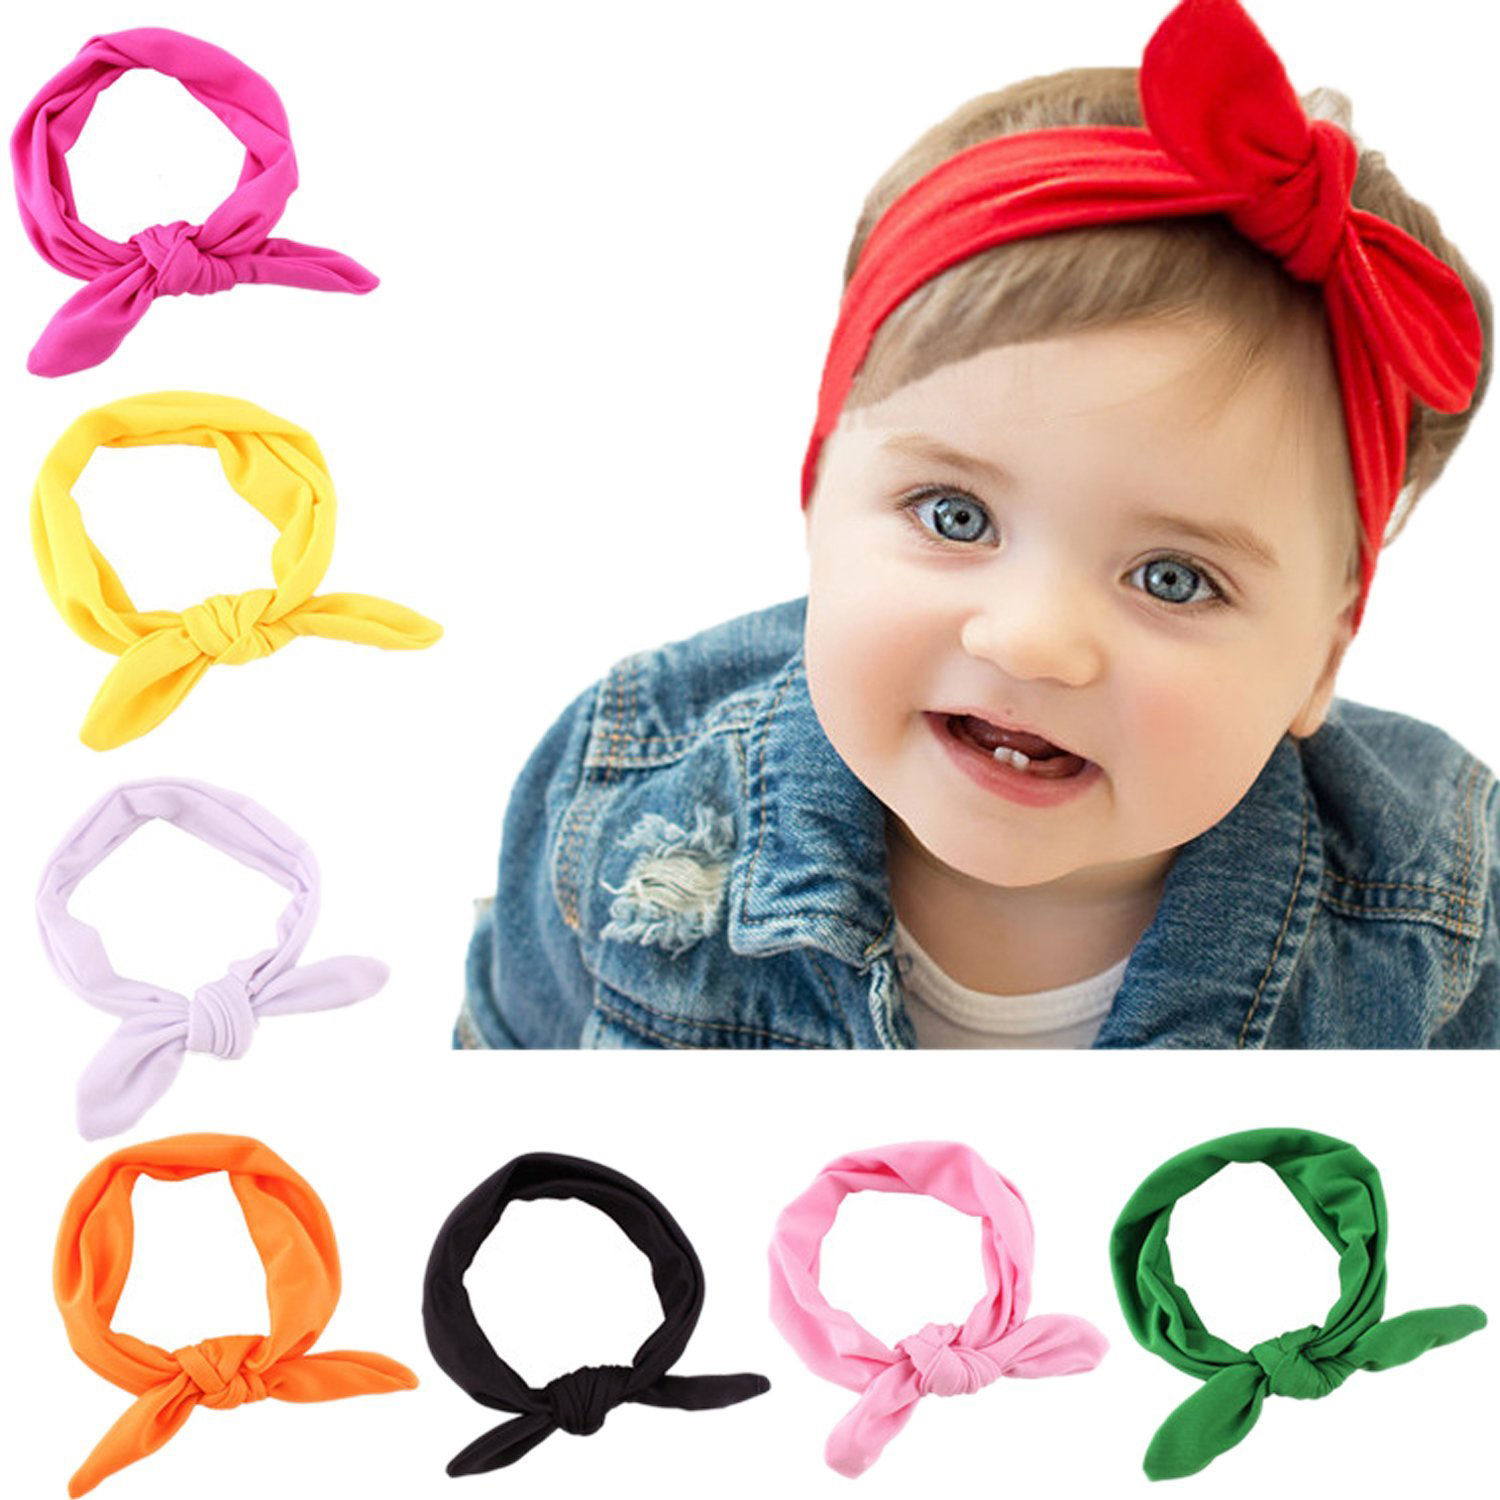 2472188b08ff Details about 8pcs Kids Girl Baby Headband Toddler Lace Bow Flower Hair  Band Accessories